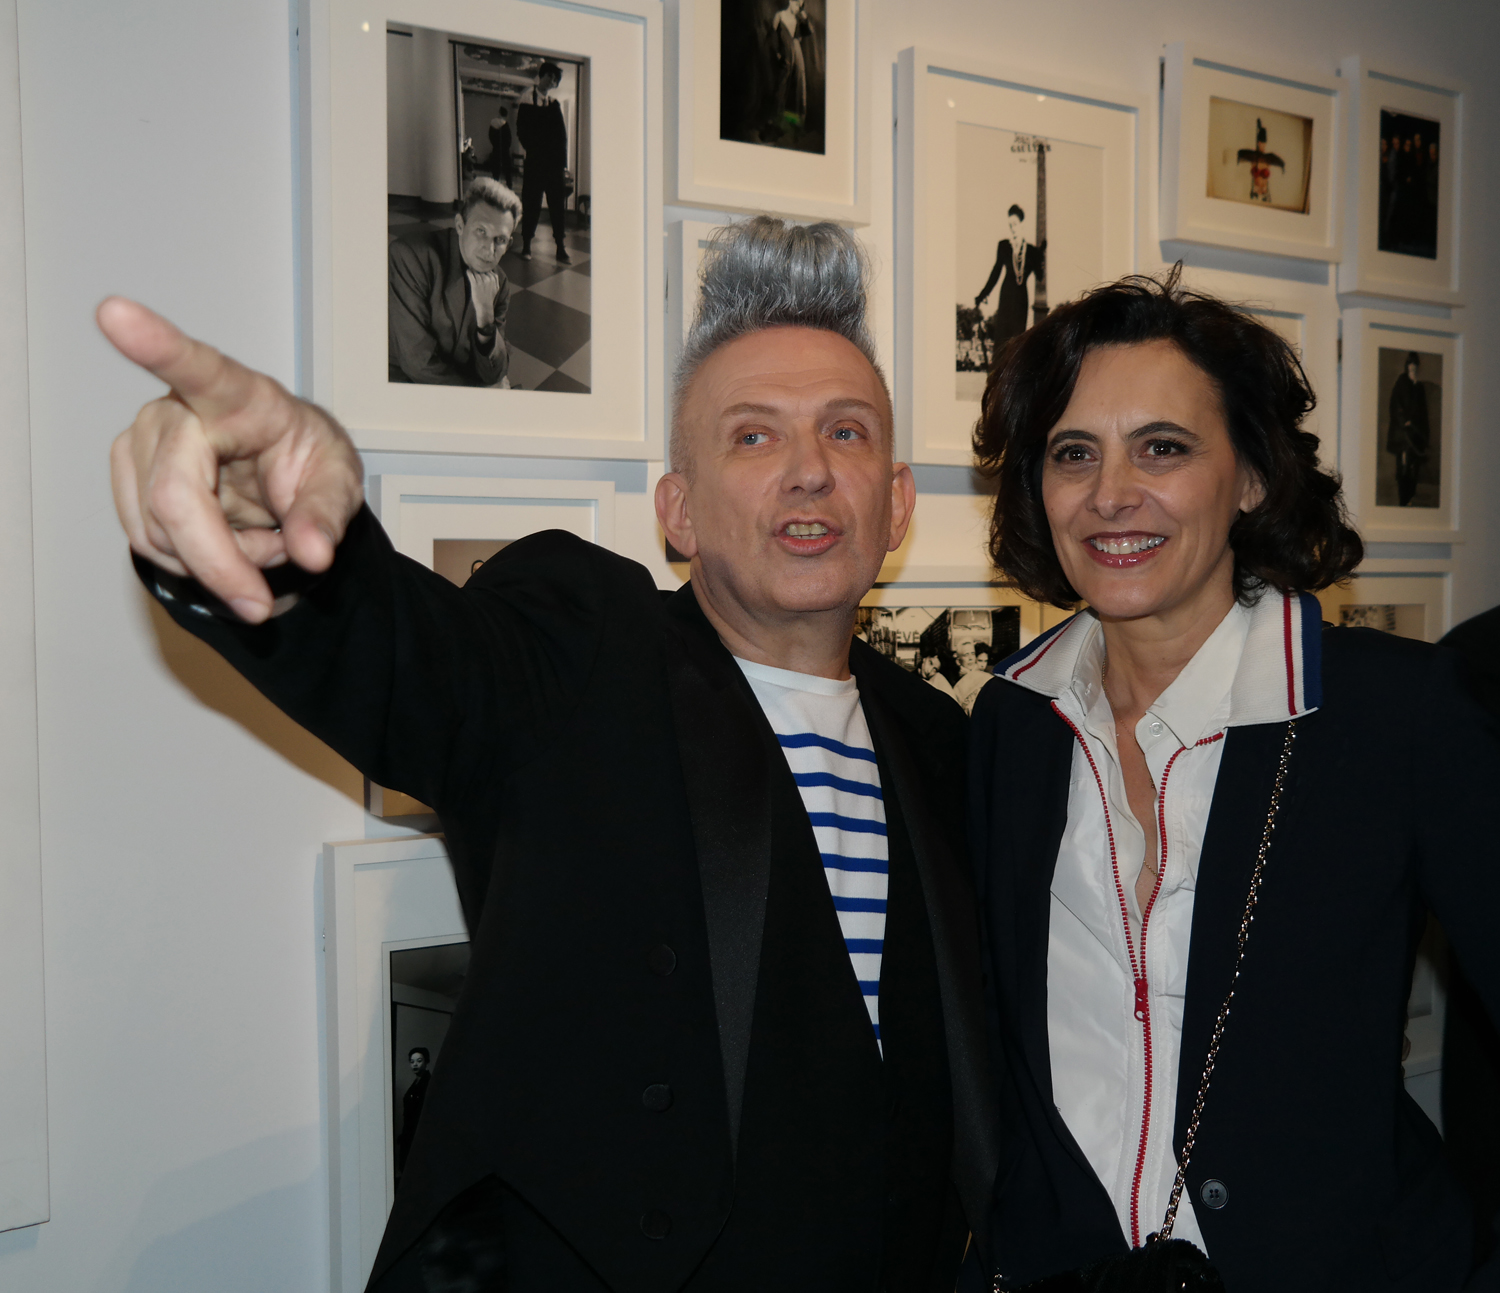 Jean Paul Gaultier couturier et muse Inès de la Fressange muse couture mode parisienne vernissage exposition Grand palais Paris photo by United States of Paris blog